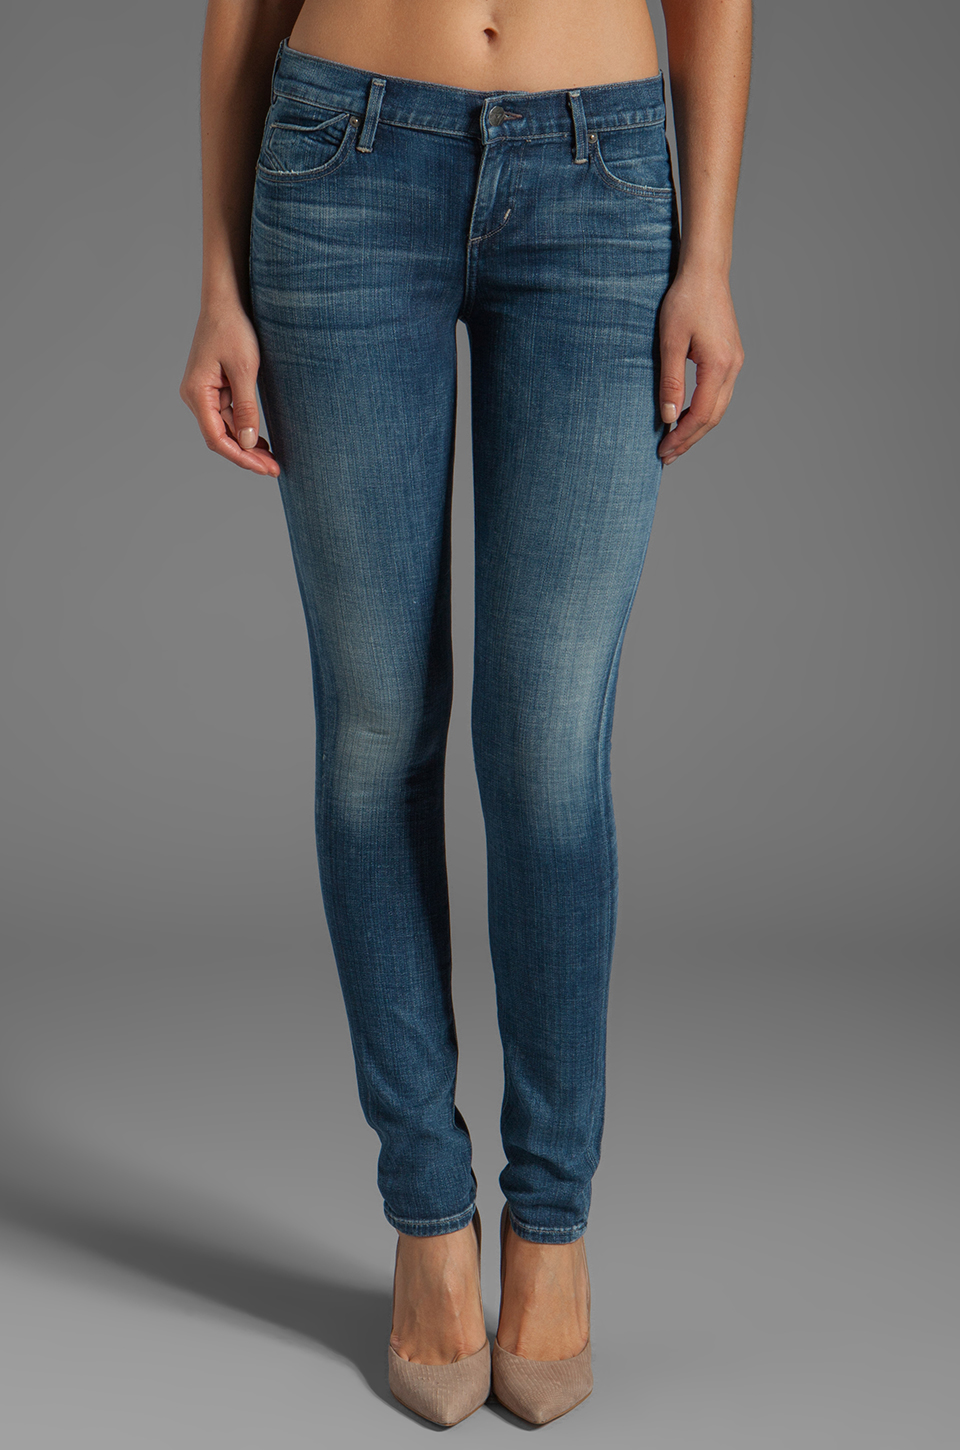 Citizens of Humanity Avedon Ultra Skinny in Wedgewood